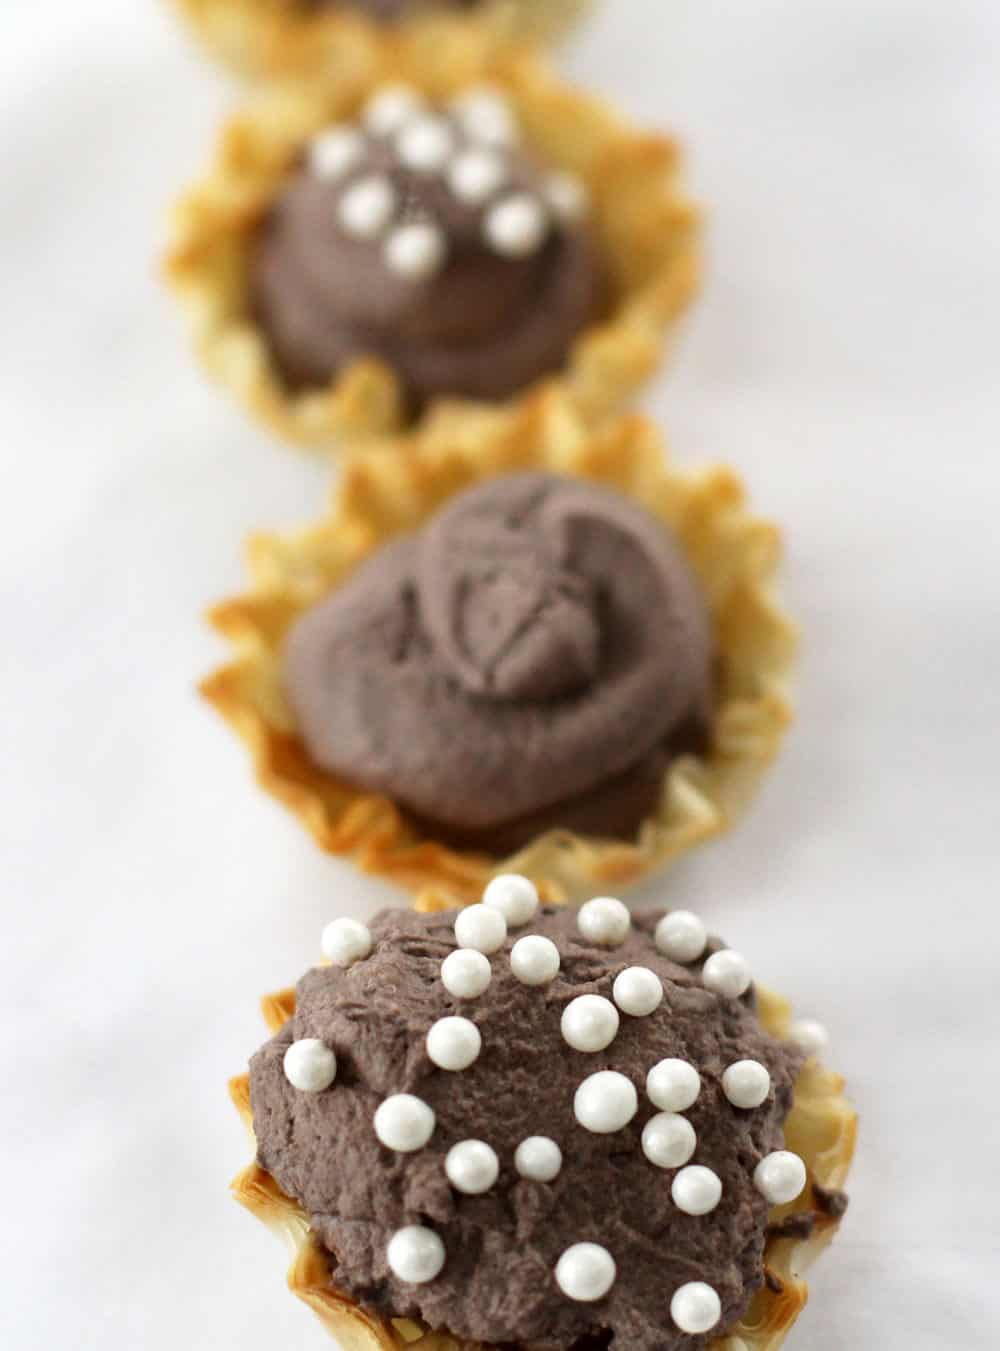 Bite sized chocolate whipped cream filled shells - a simple, yet elegant dessert.